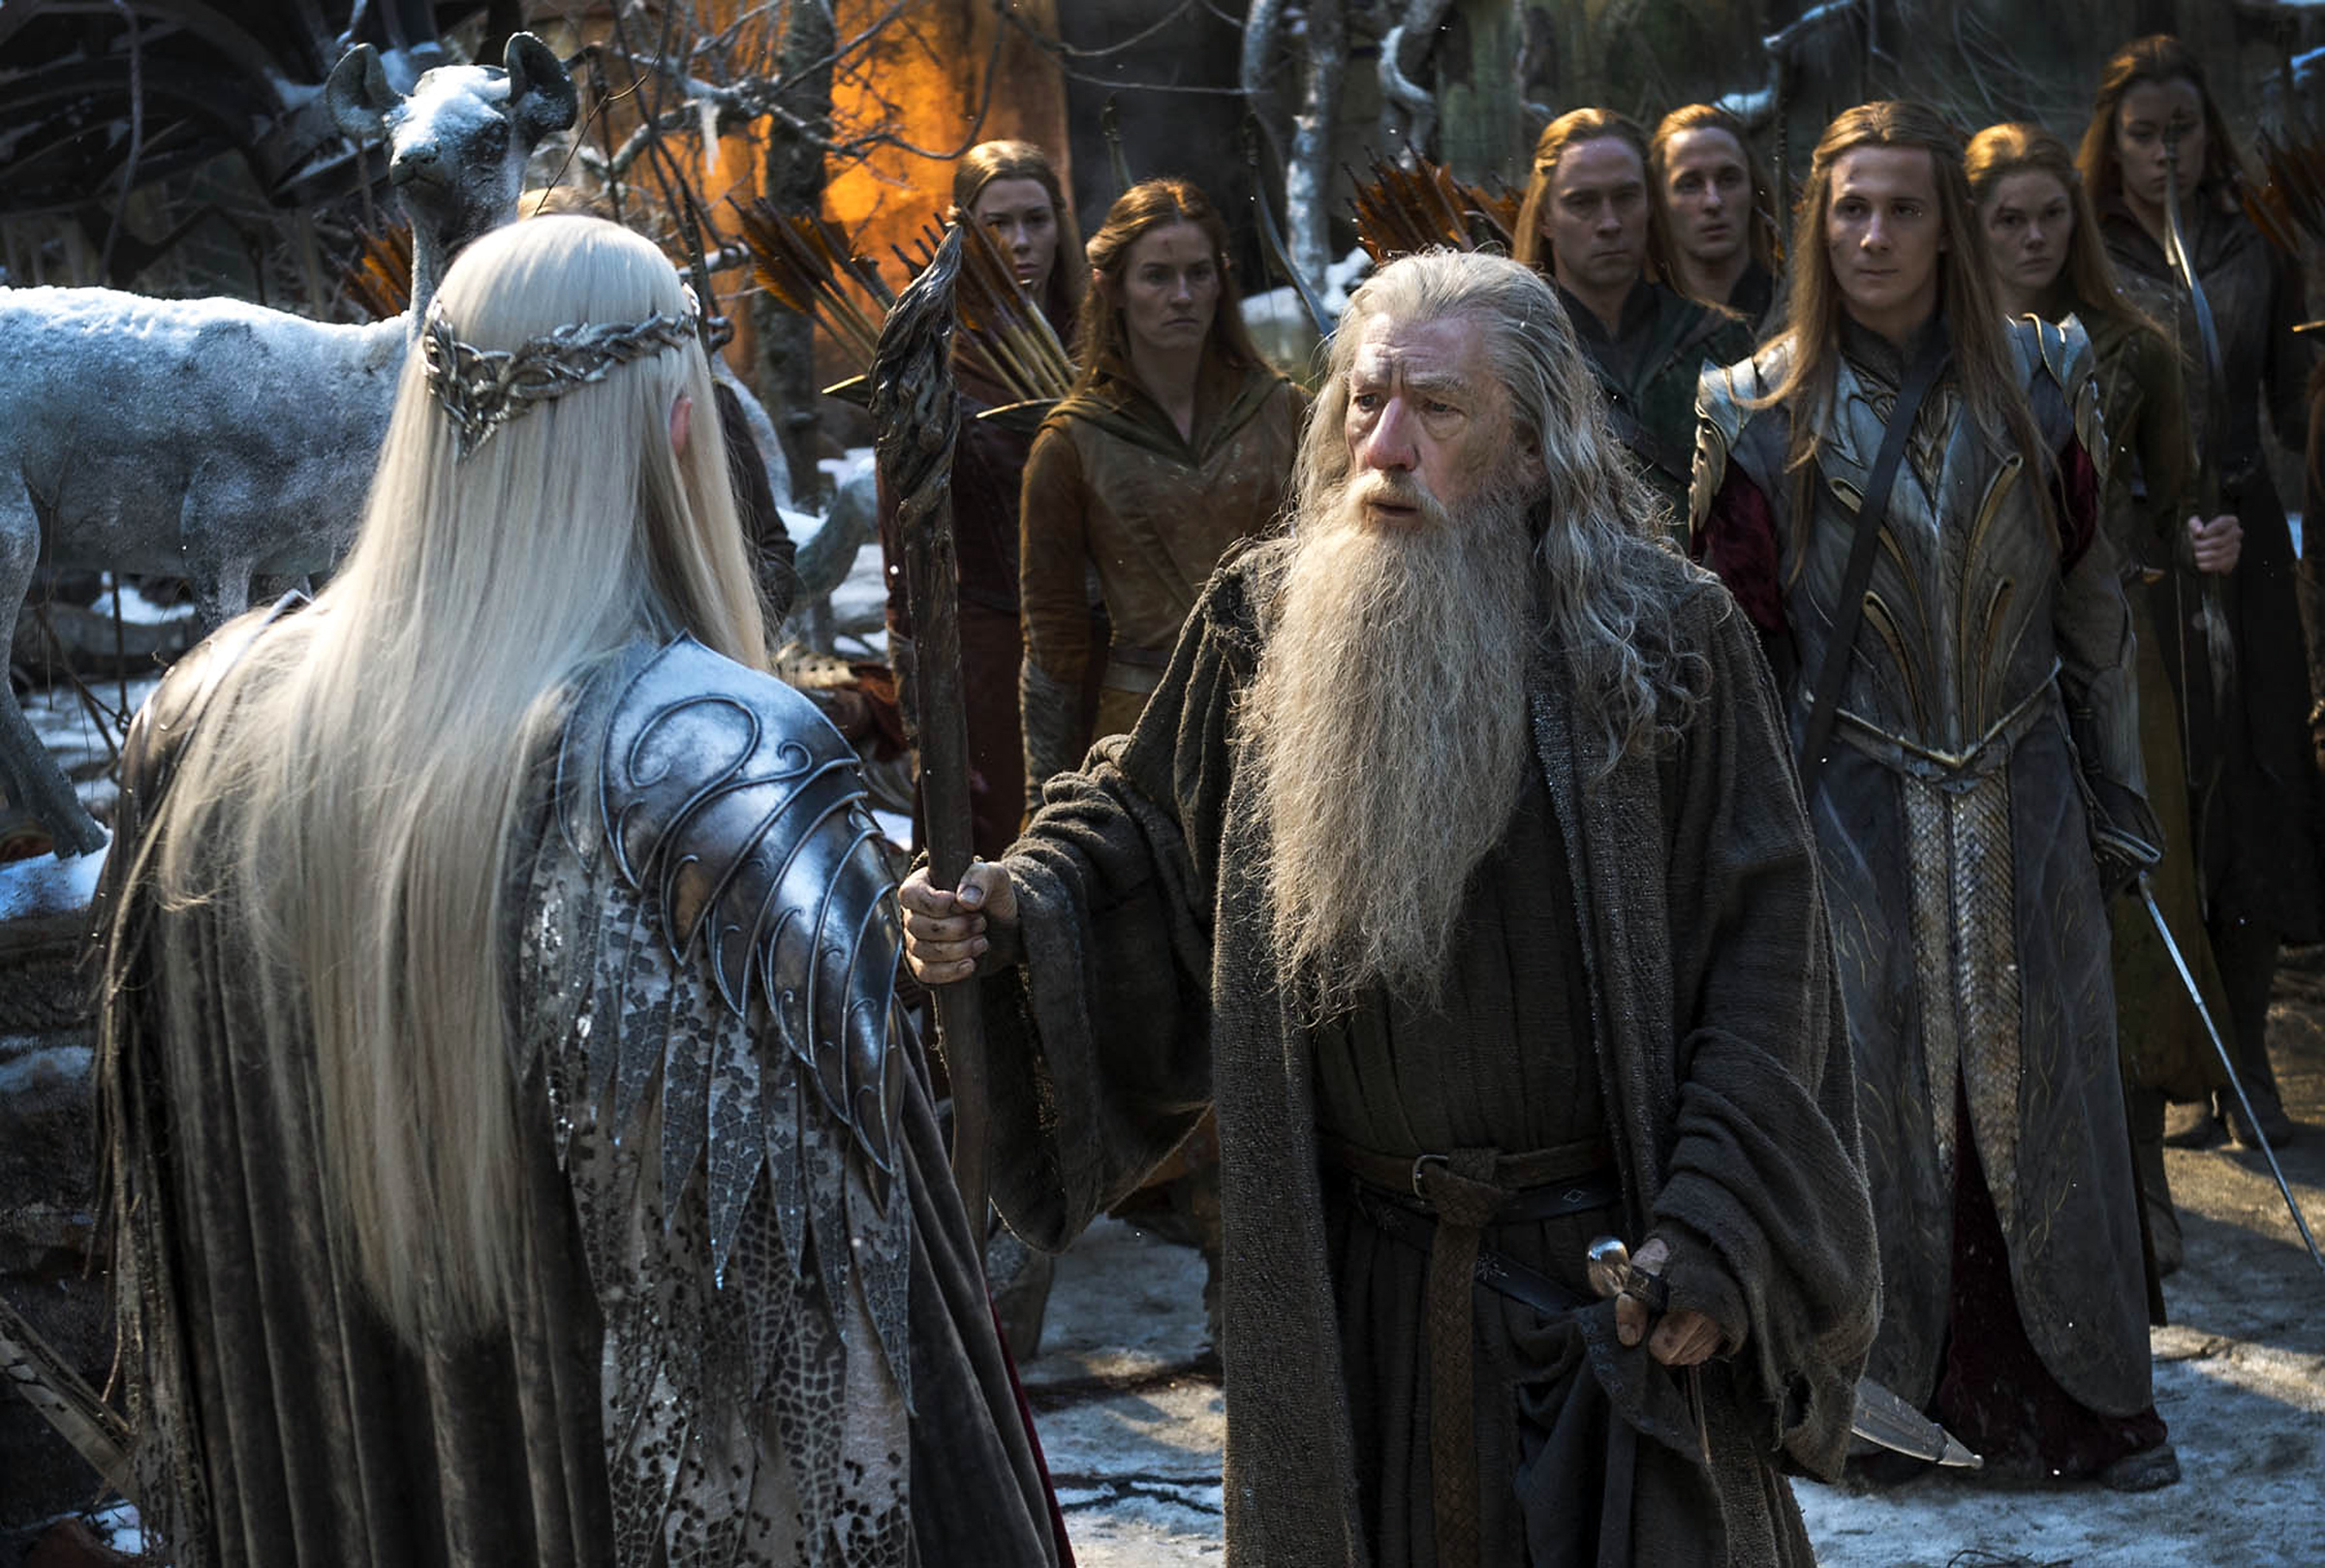 The-Hobbit-The-Battle-of-the-Five-Armies-PROMO-PHOTOS-11NOVEMBRO2014